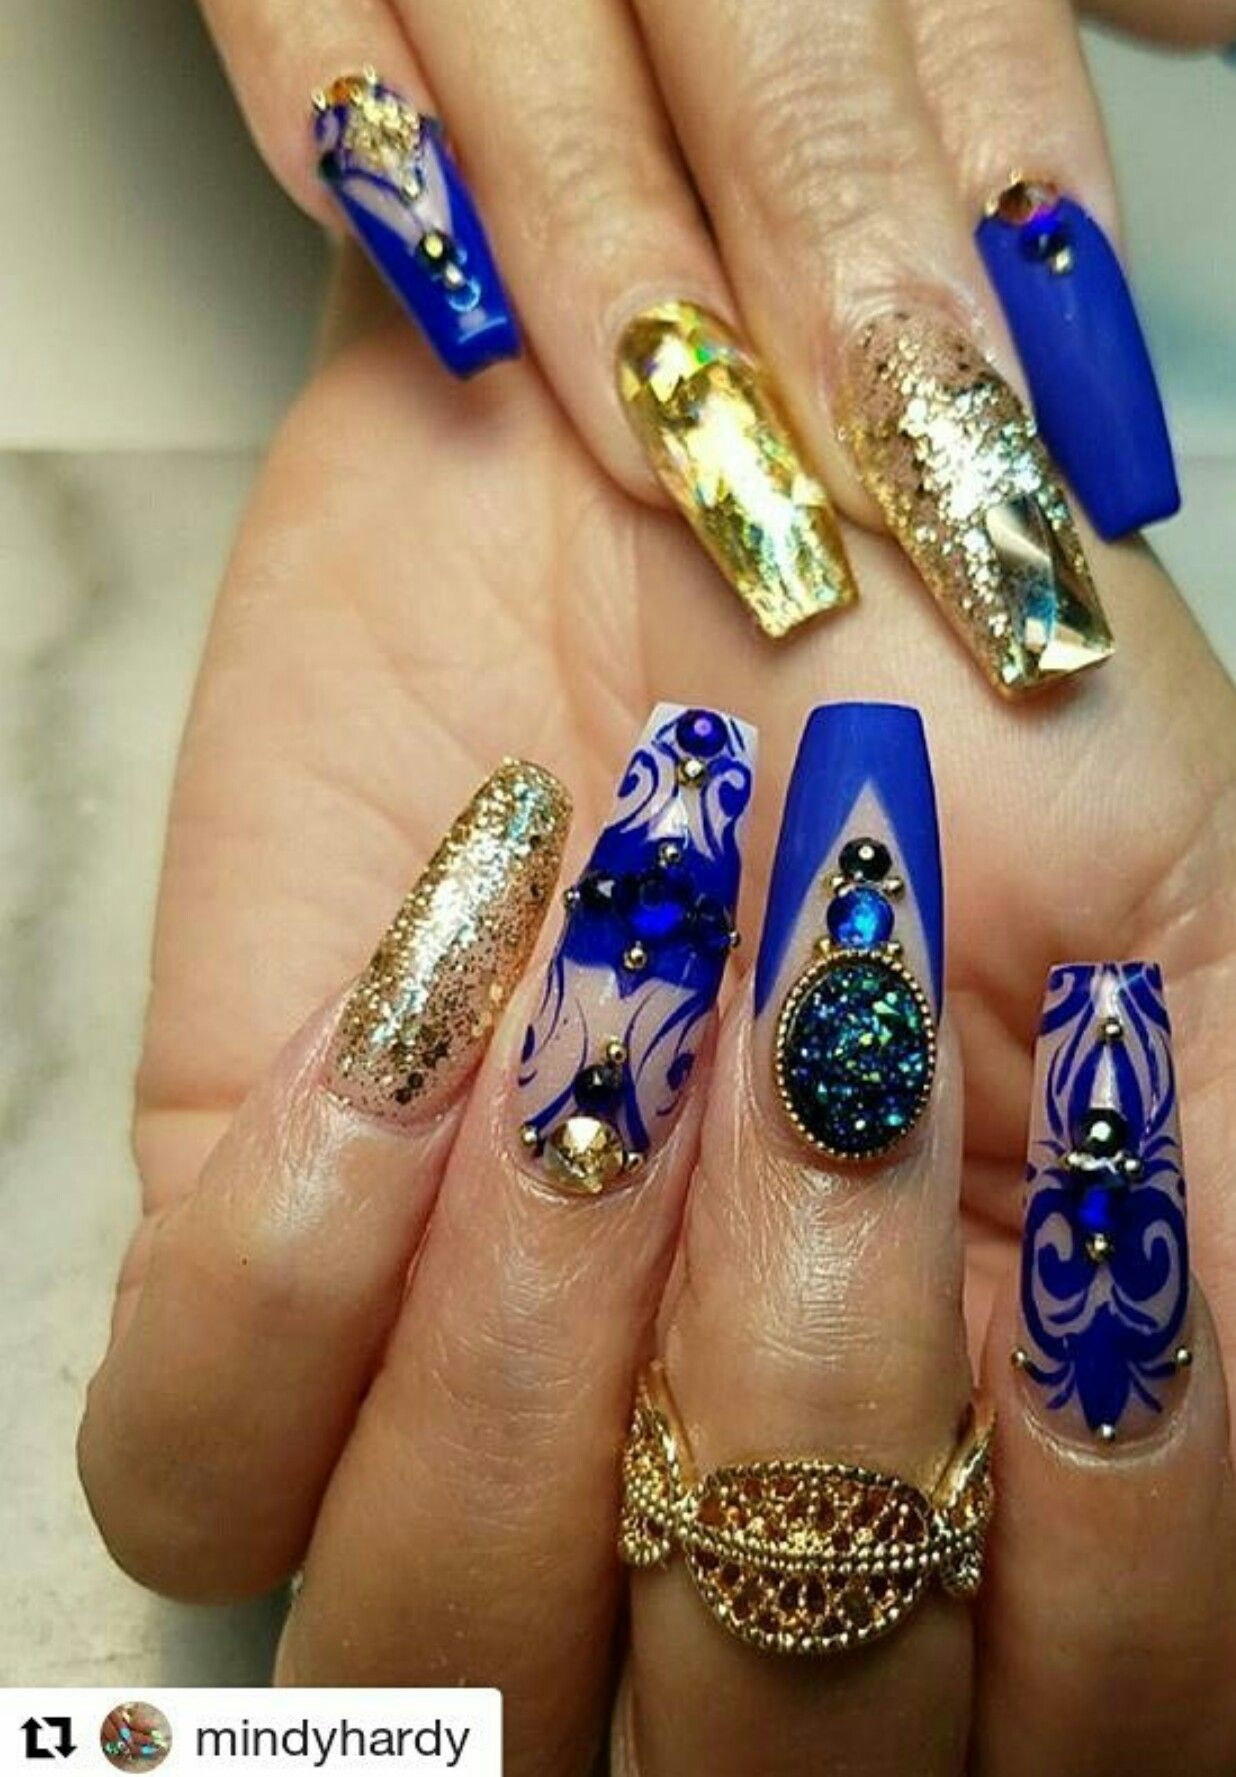 Blue and gold nails design | About Fashion and Beauty | Pinterest ...